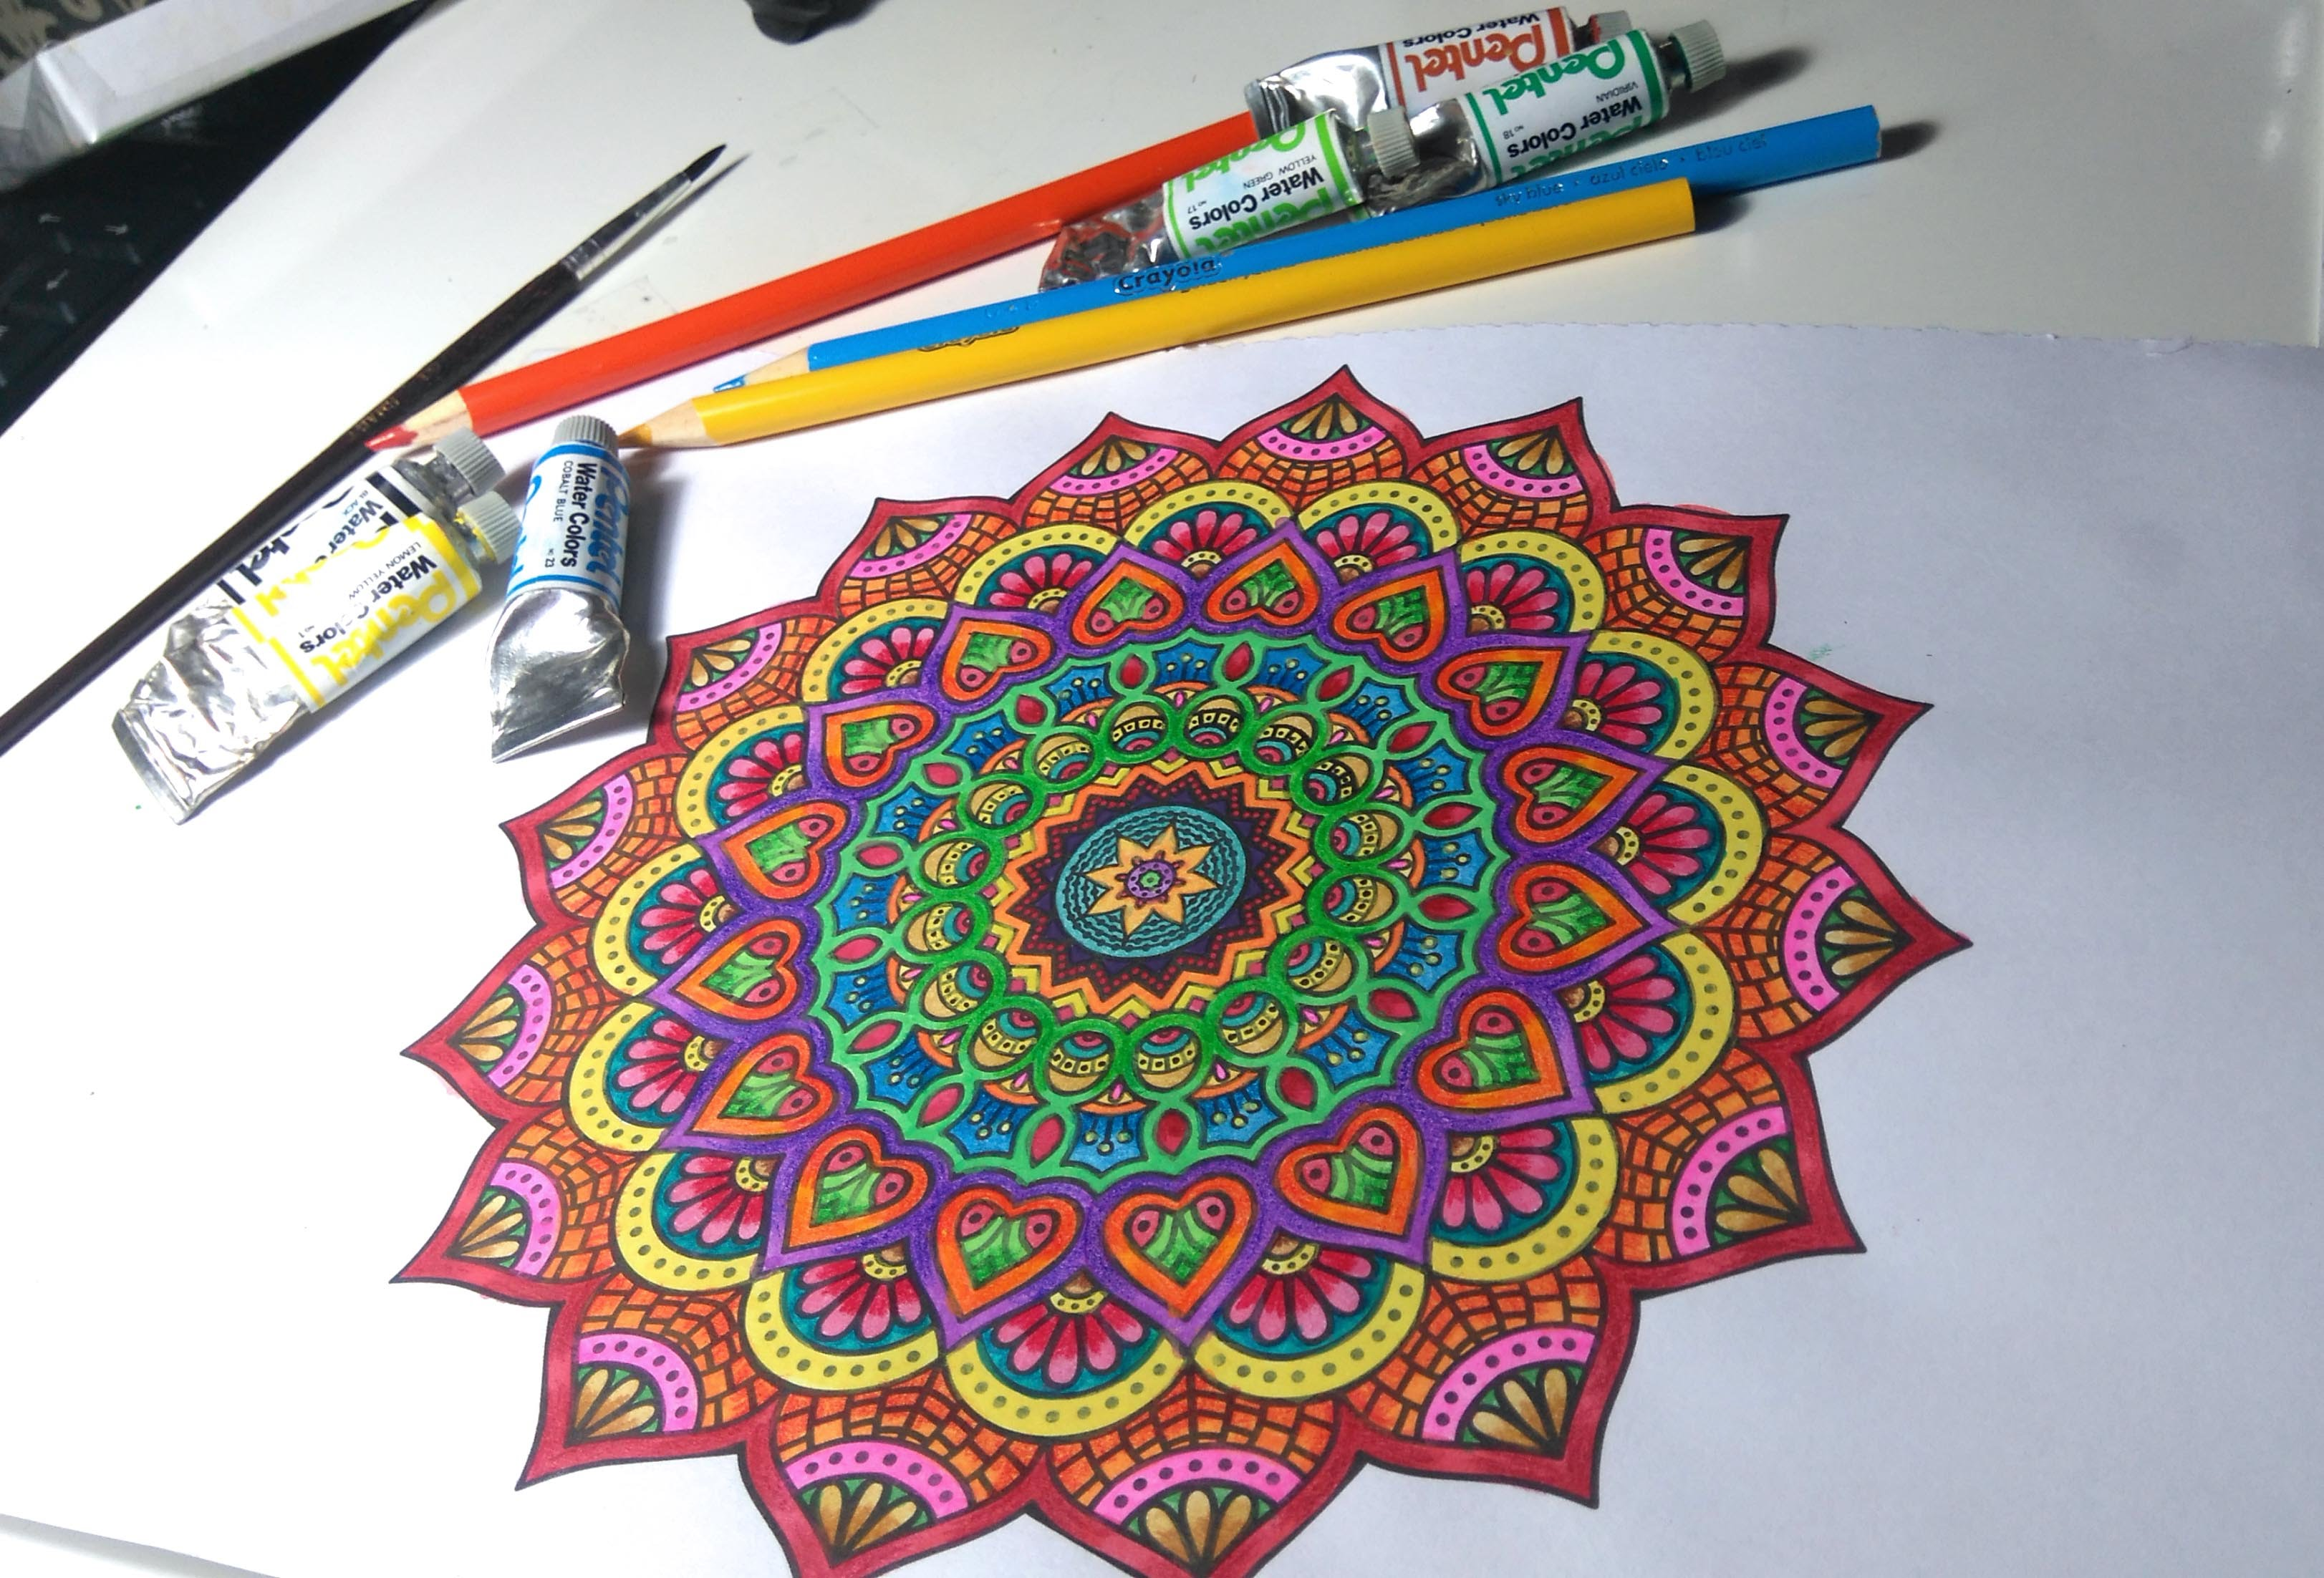 flower mandala in yellow, orange and red, pink and blue, craft ideas, colored pencils and tubs of paint in background